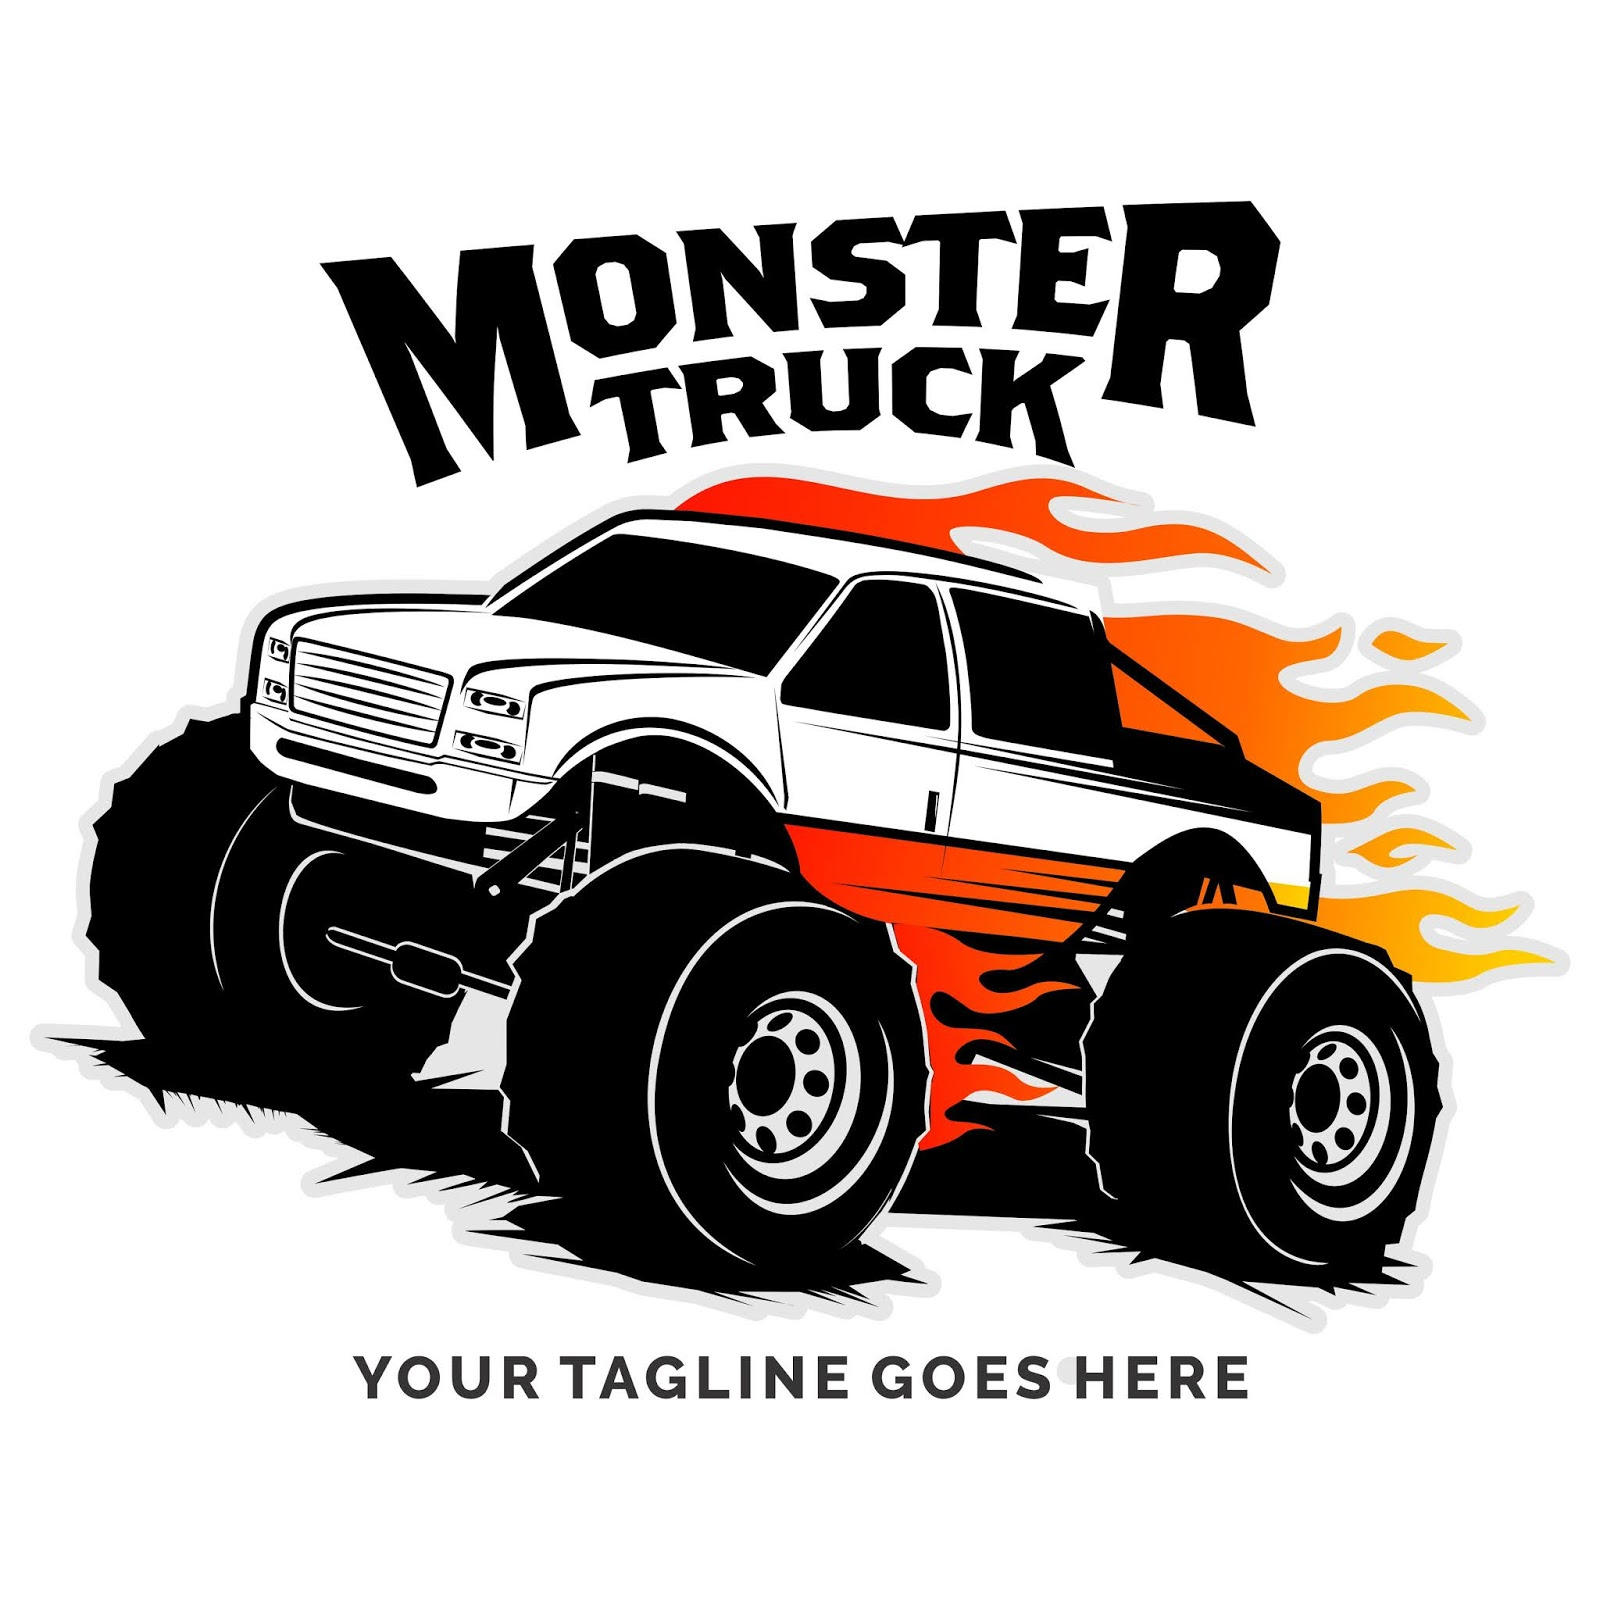 Monster Truck Vector Logo Design Inspiration Free Download Vector CDR, AI, EPS and PNG Formats